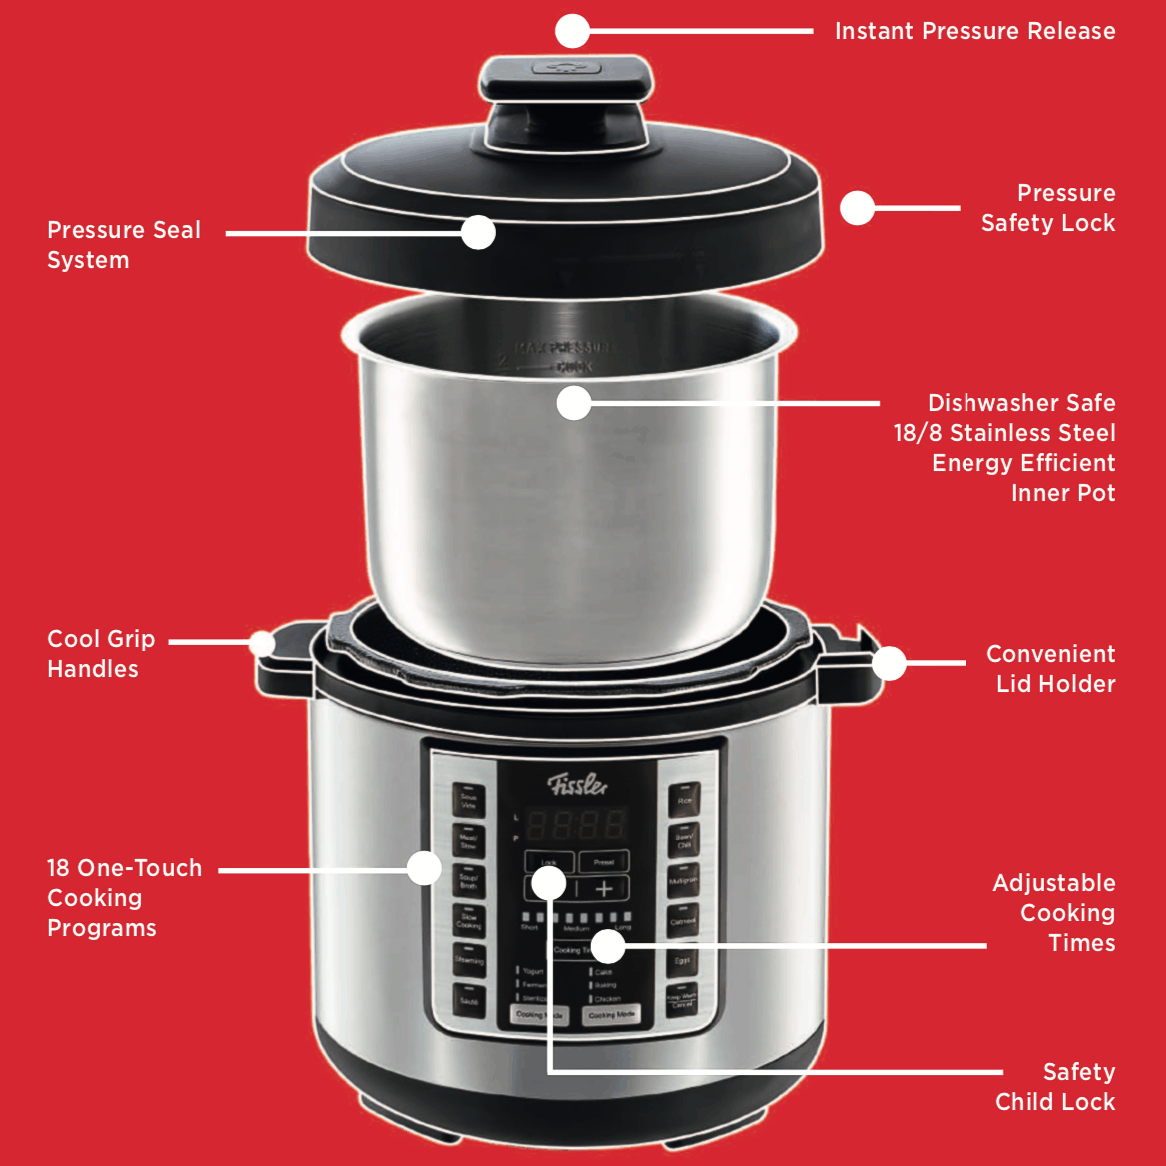 Fissler Souspreme Multi-Cooker Pot Features